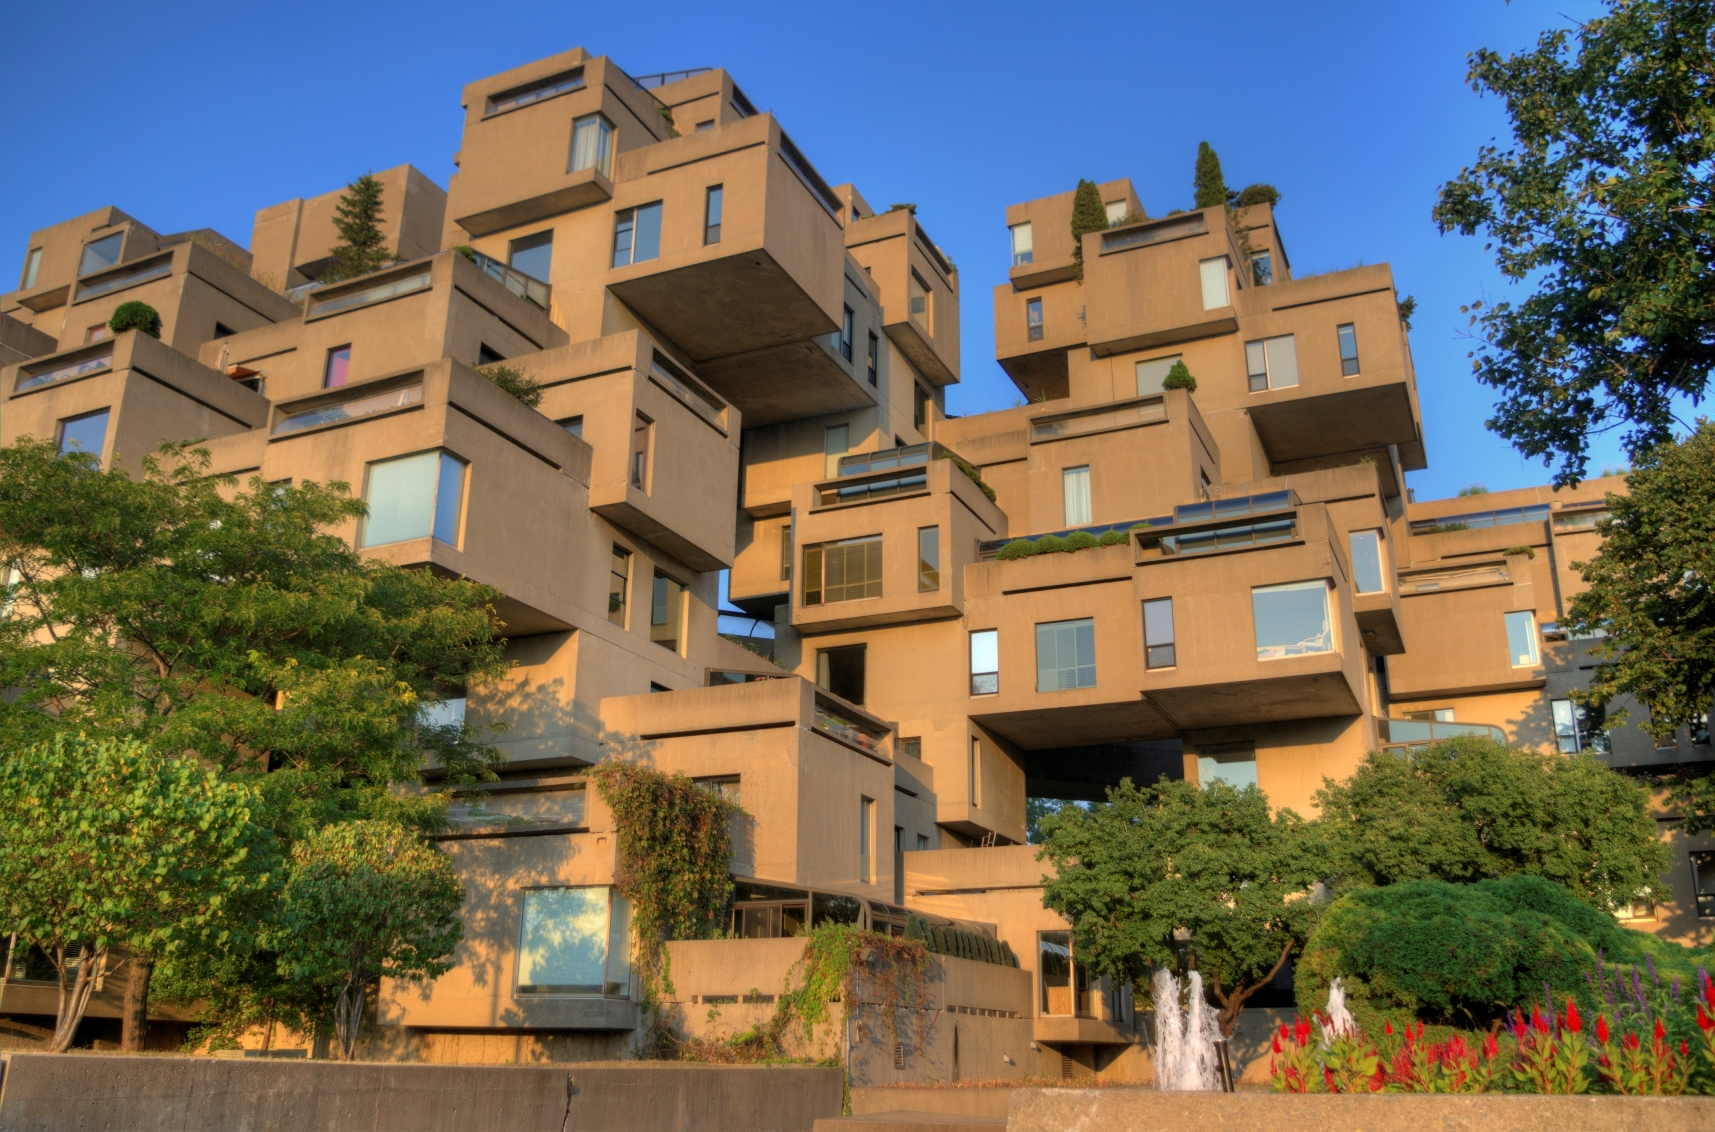 File habitat wikimedia commons for Habitat 67 architecture